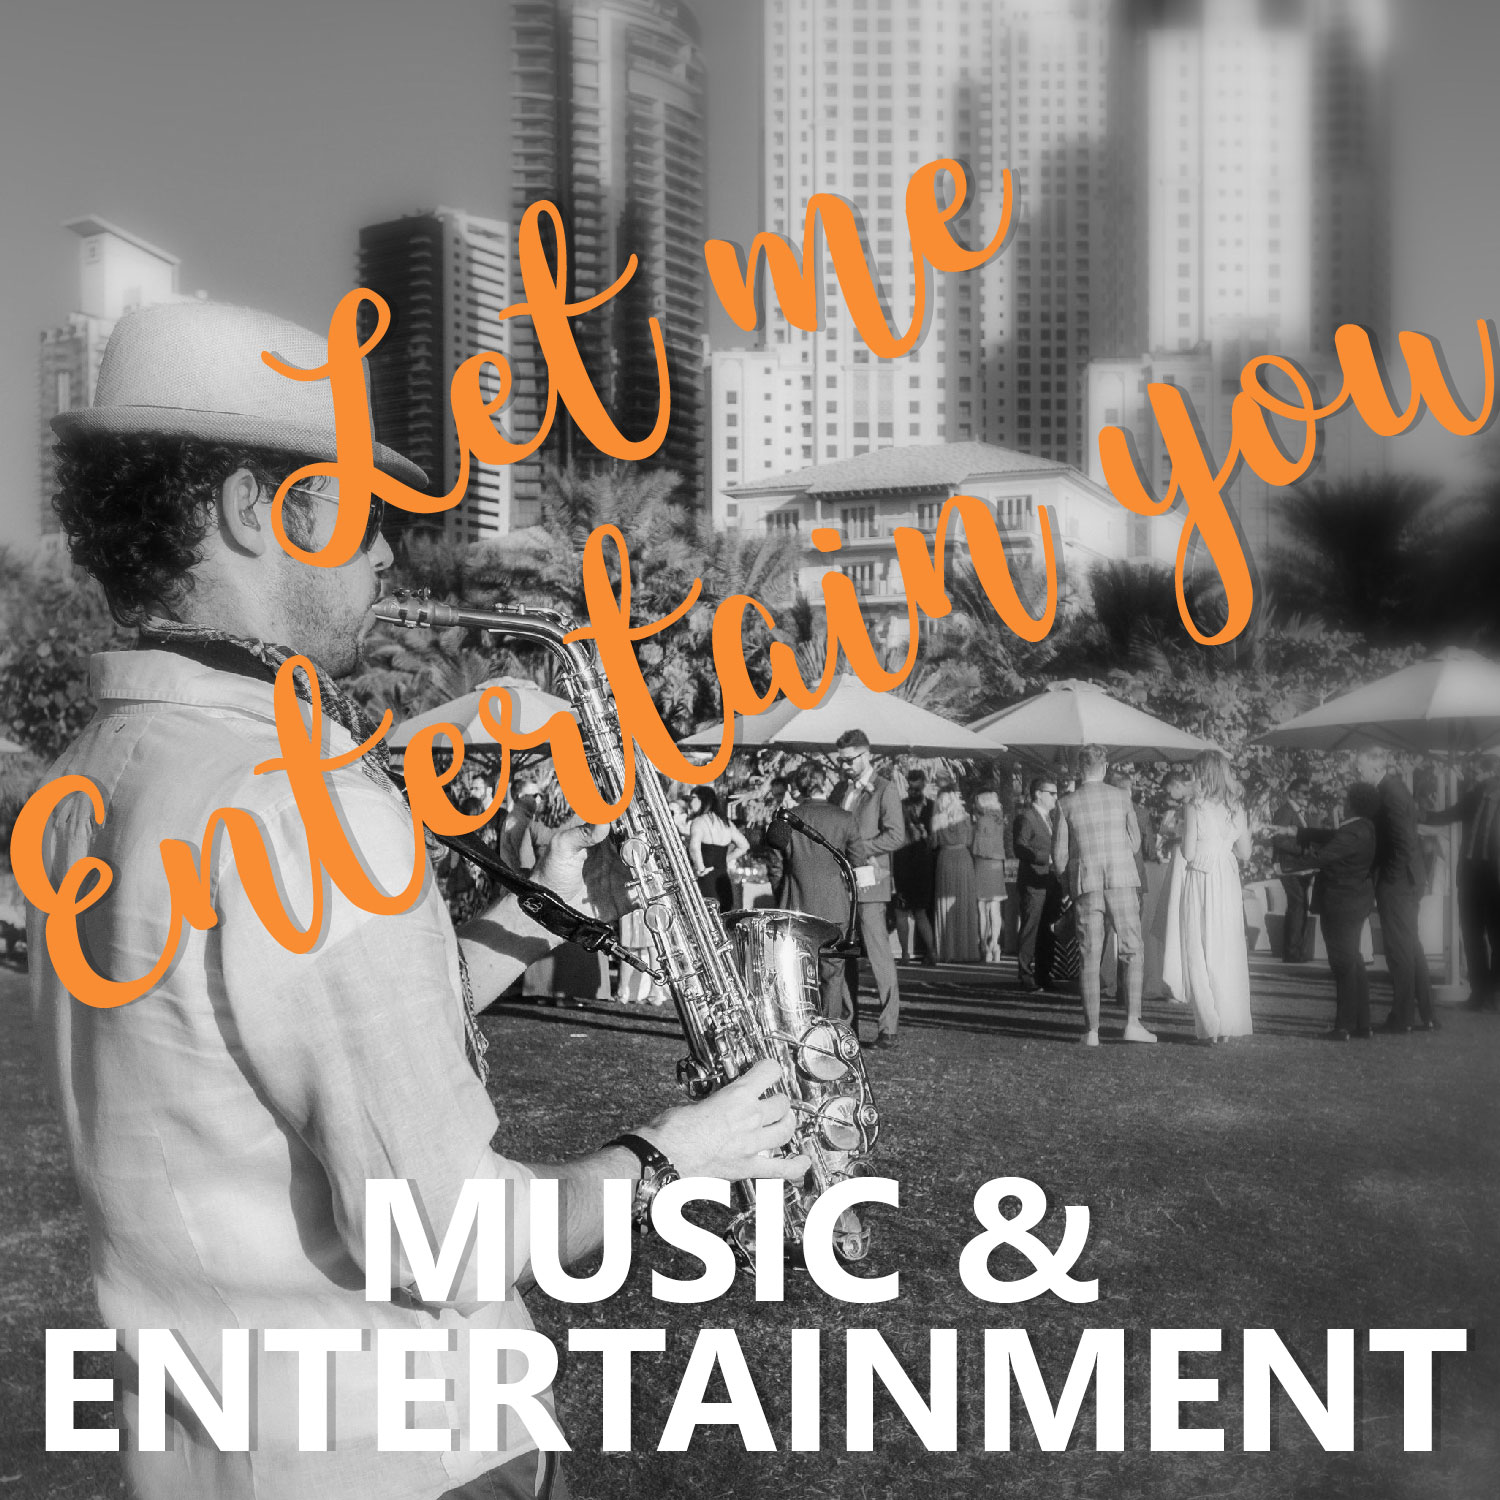 9 MUSIC ENTERTAINMENT - Music & Entertainment